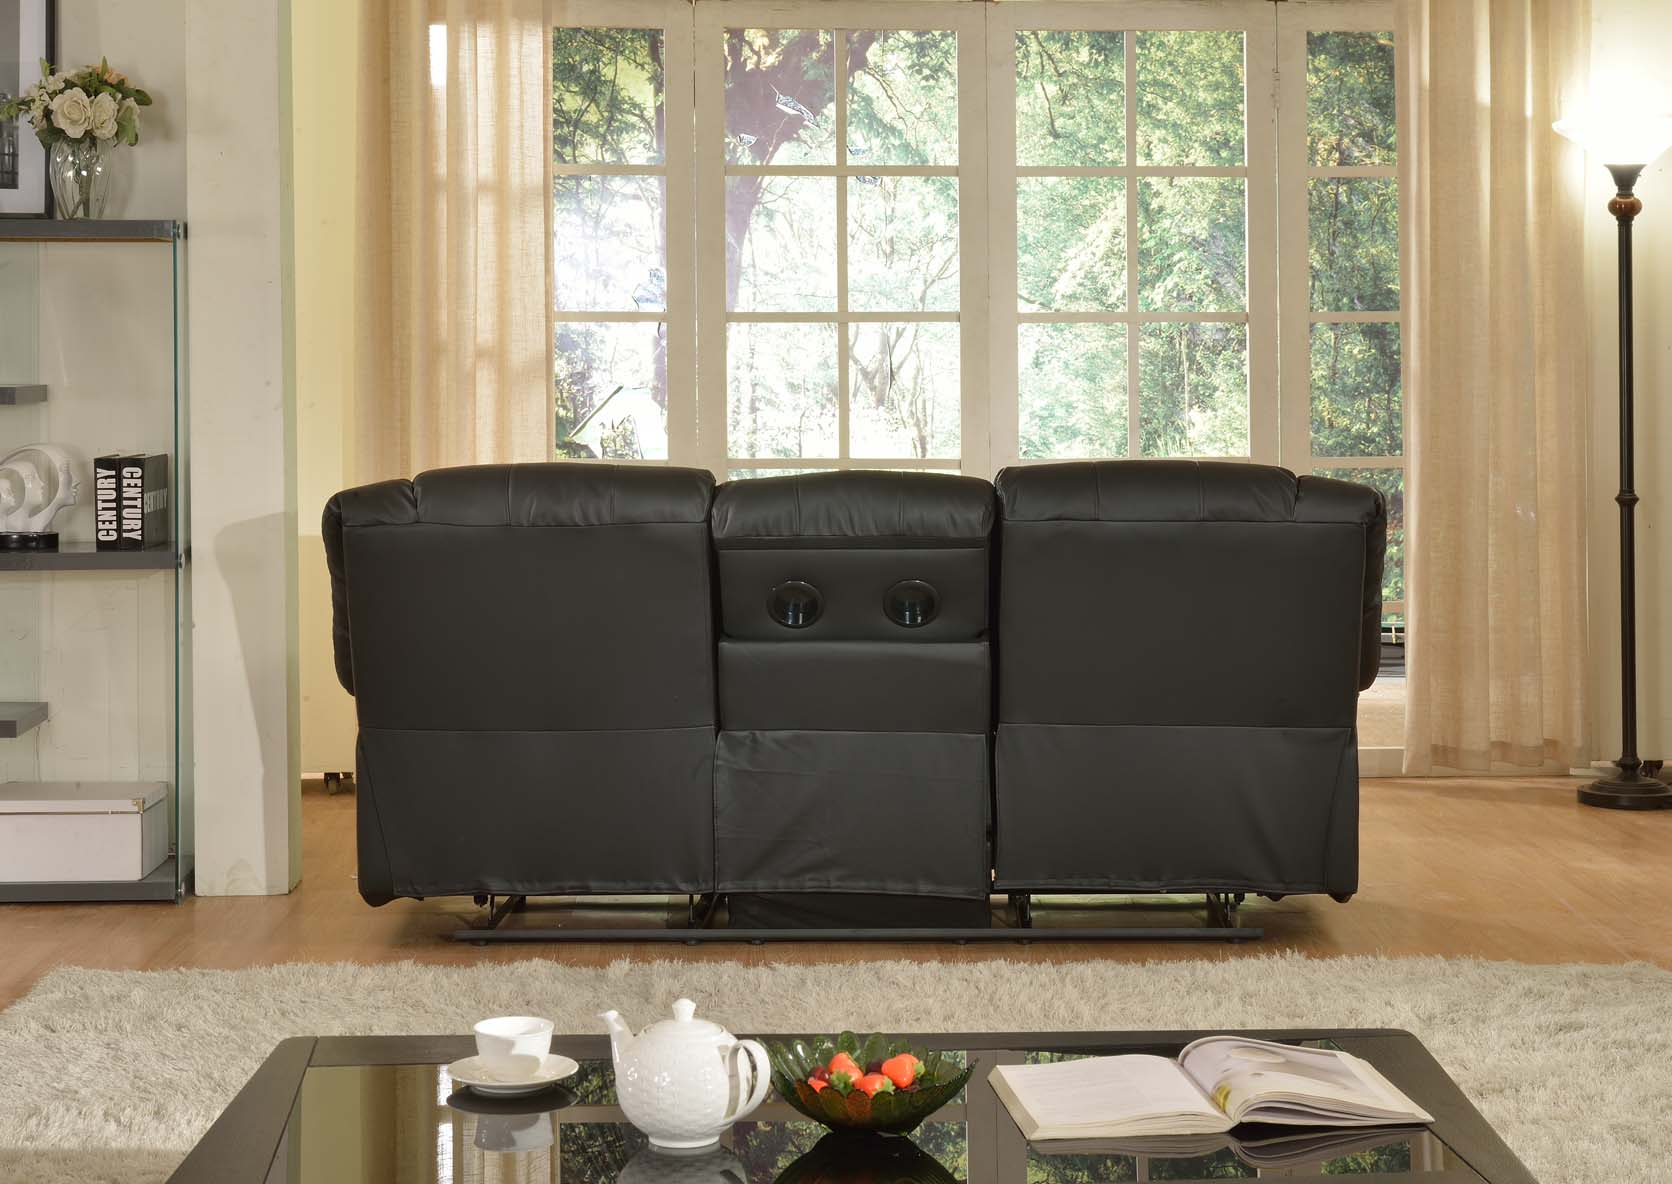 Layla Black Faux Leather Reclining Sofa with Drop-down tea table - Walmart.com : stylish reclining sofa - islam-shia.org